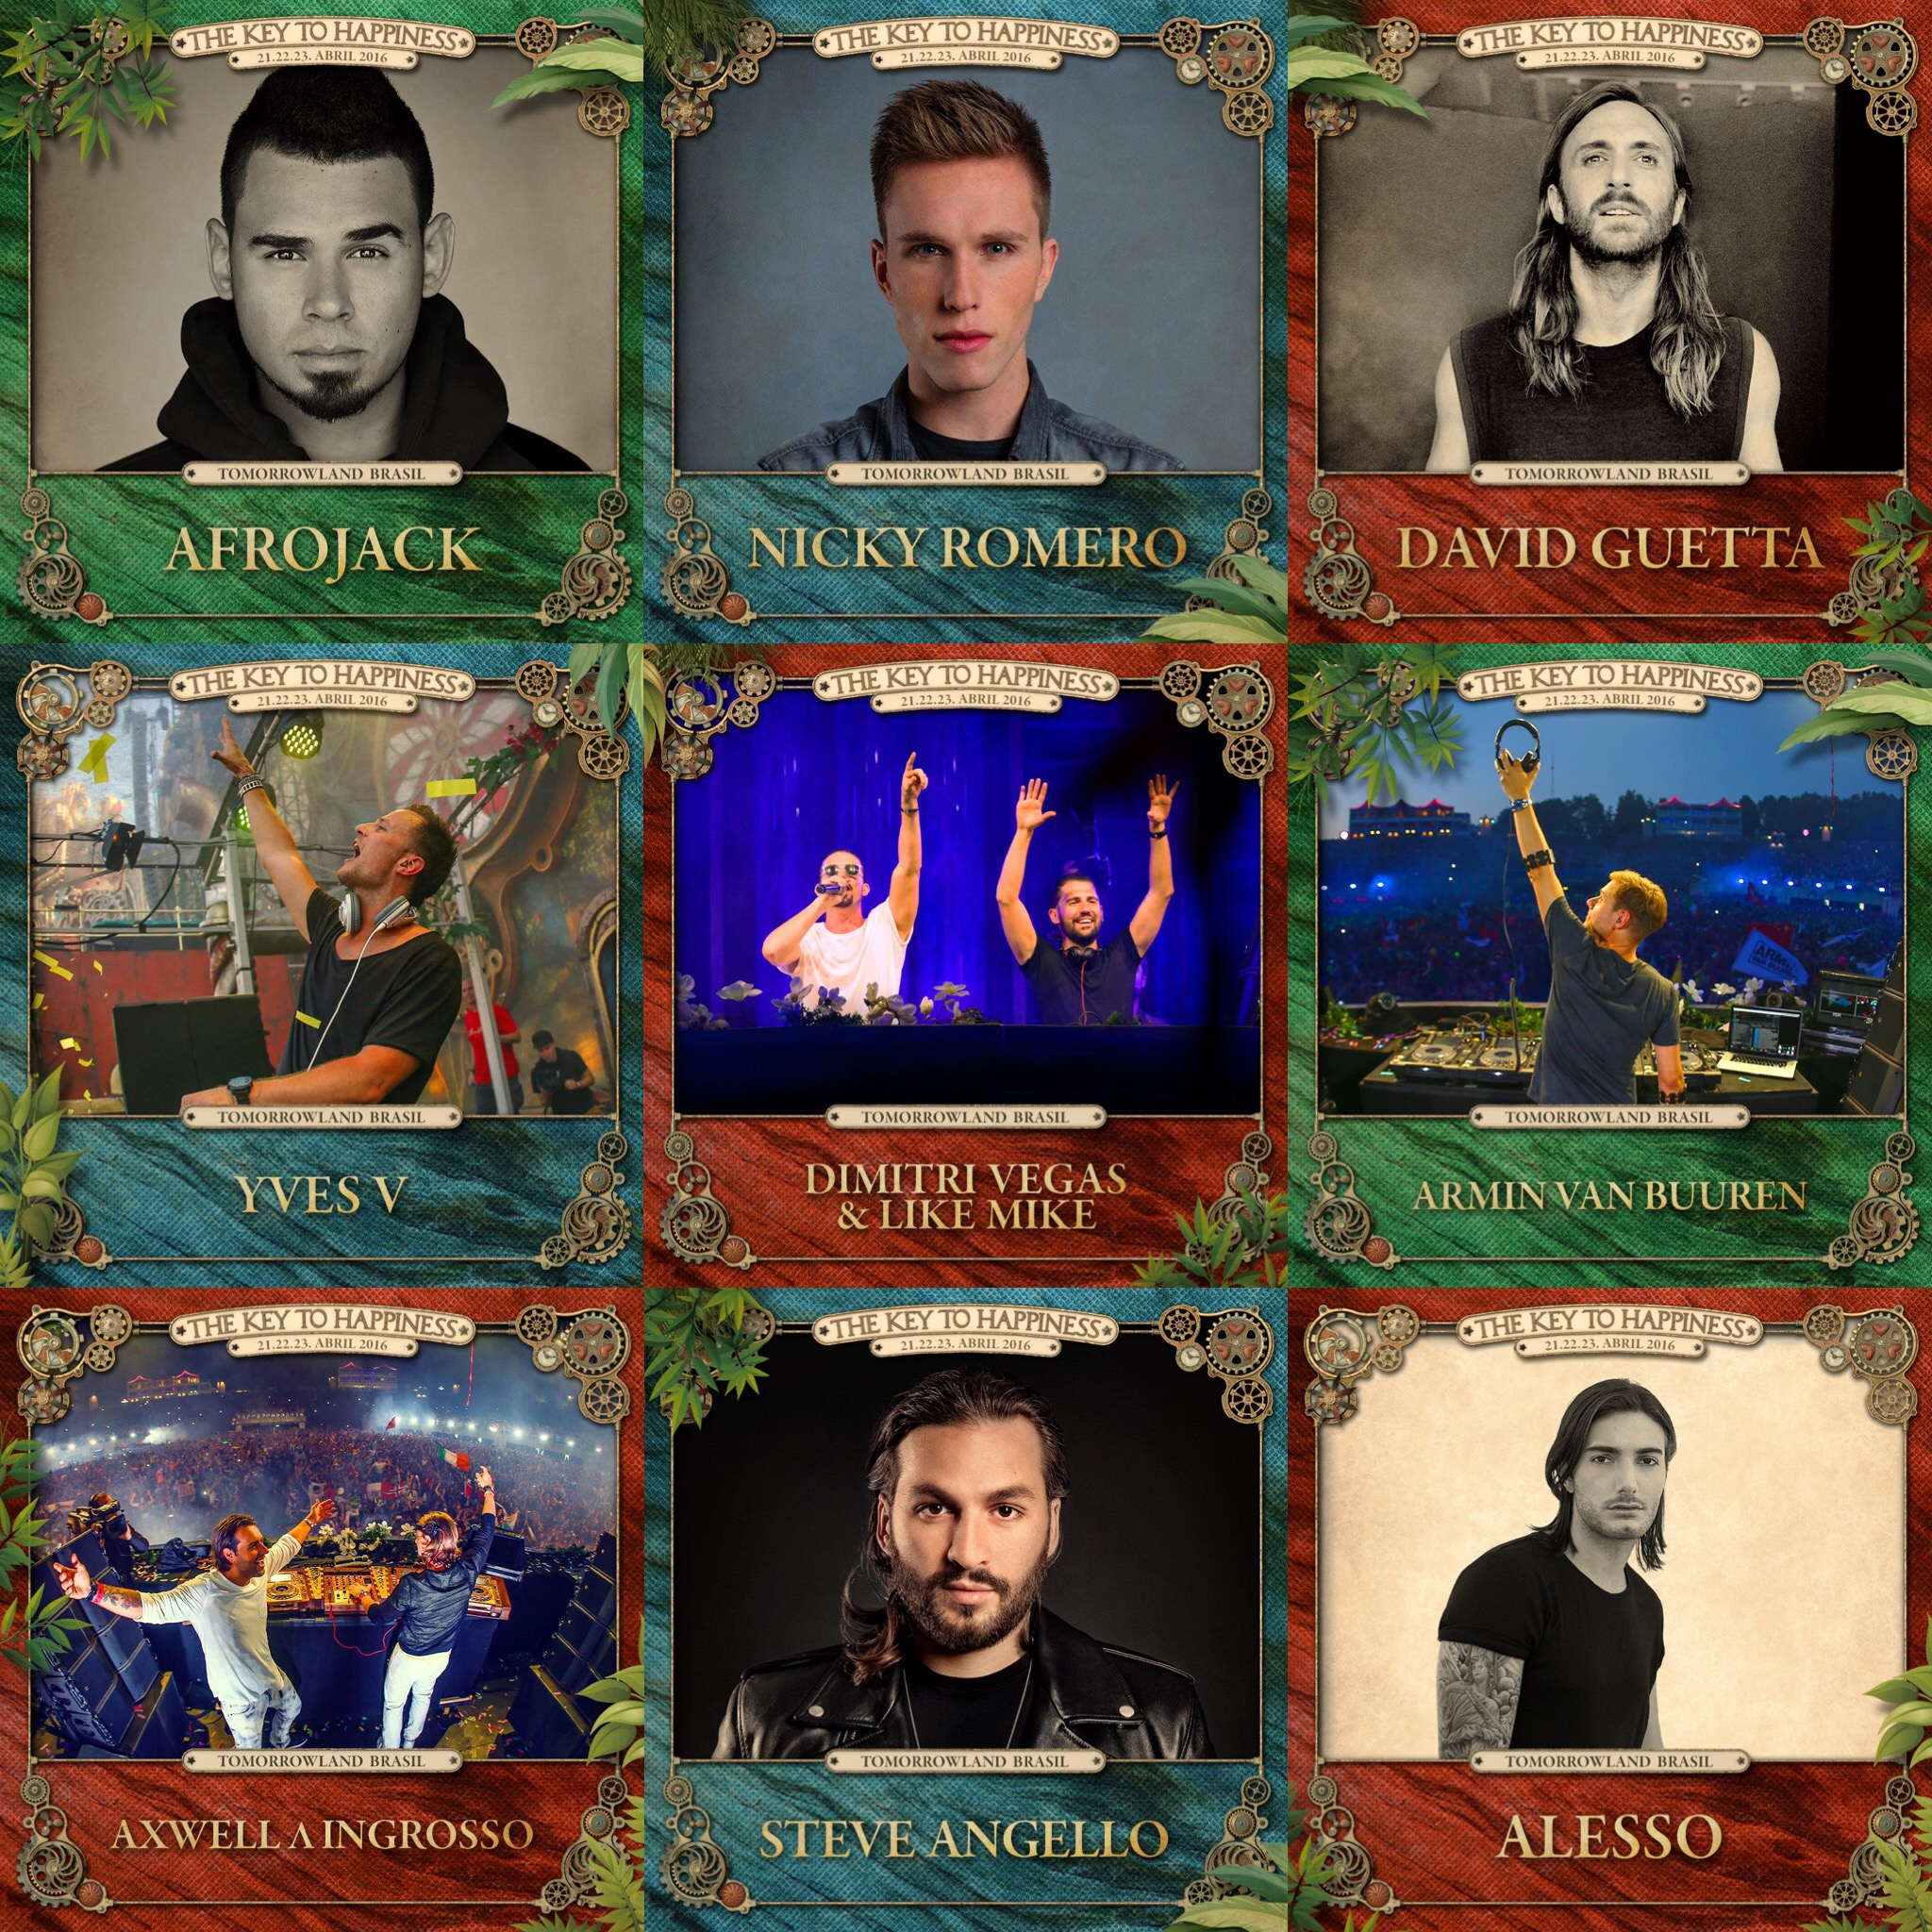 Tomorrowland Brasil 2016 Headliners